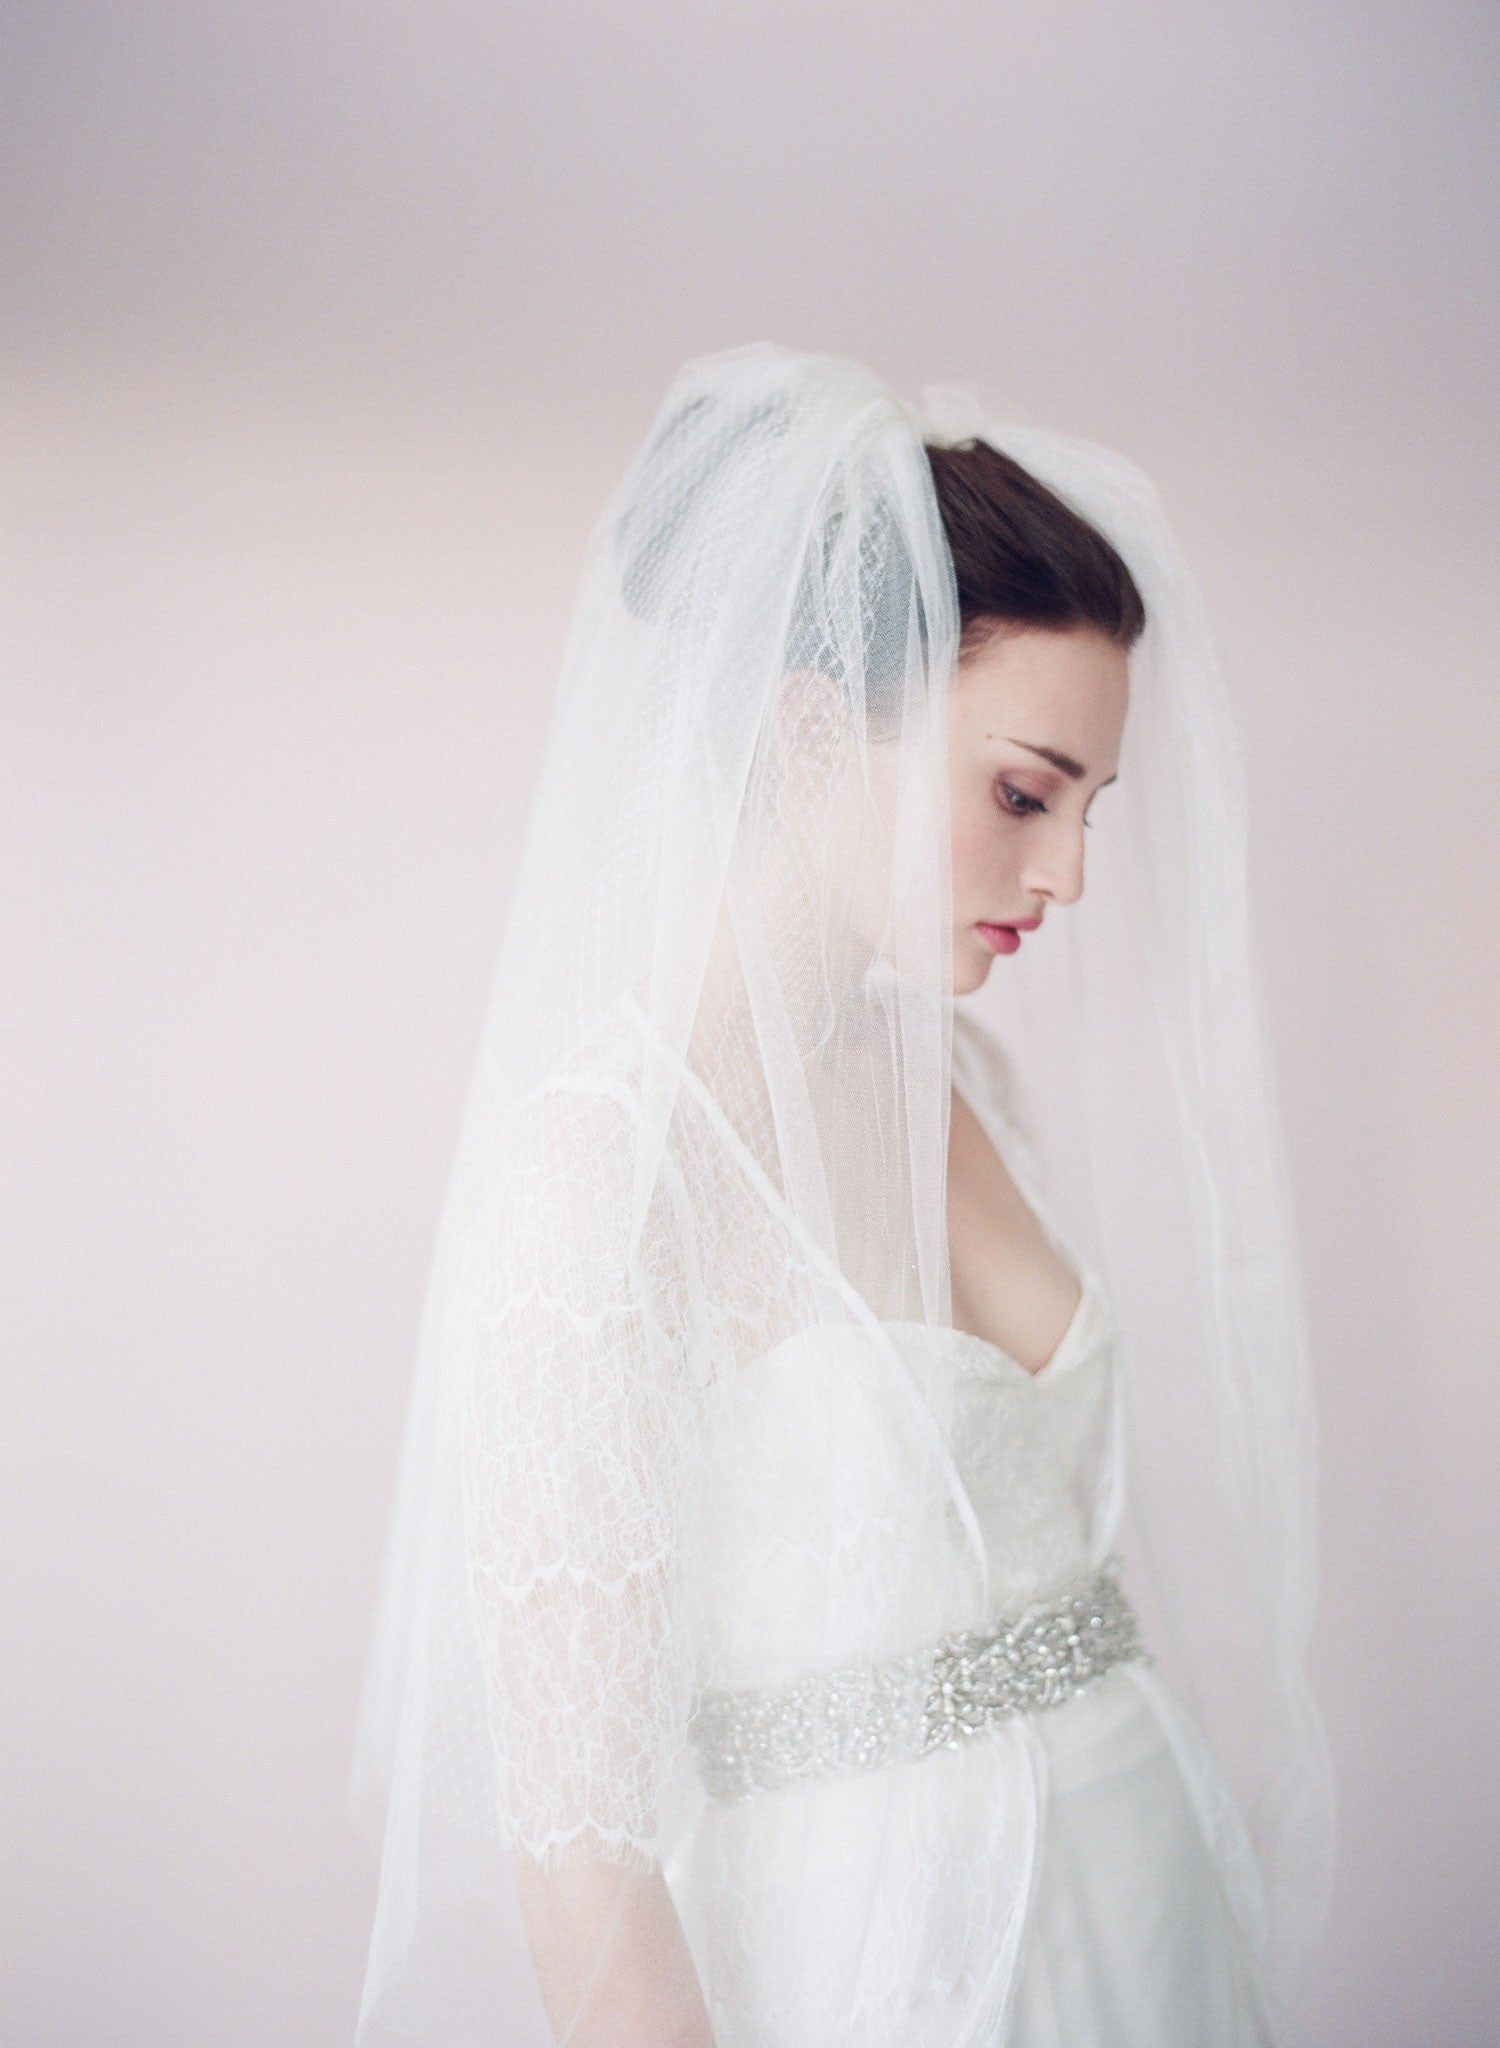 Tulle and russian elbow veil - Style # 426